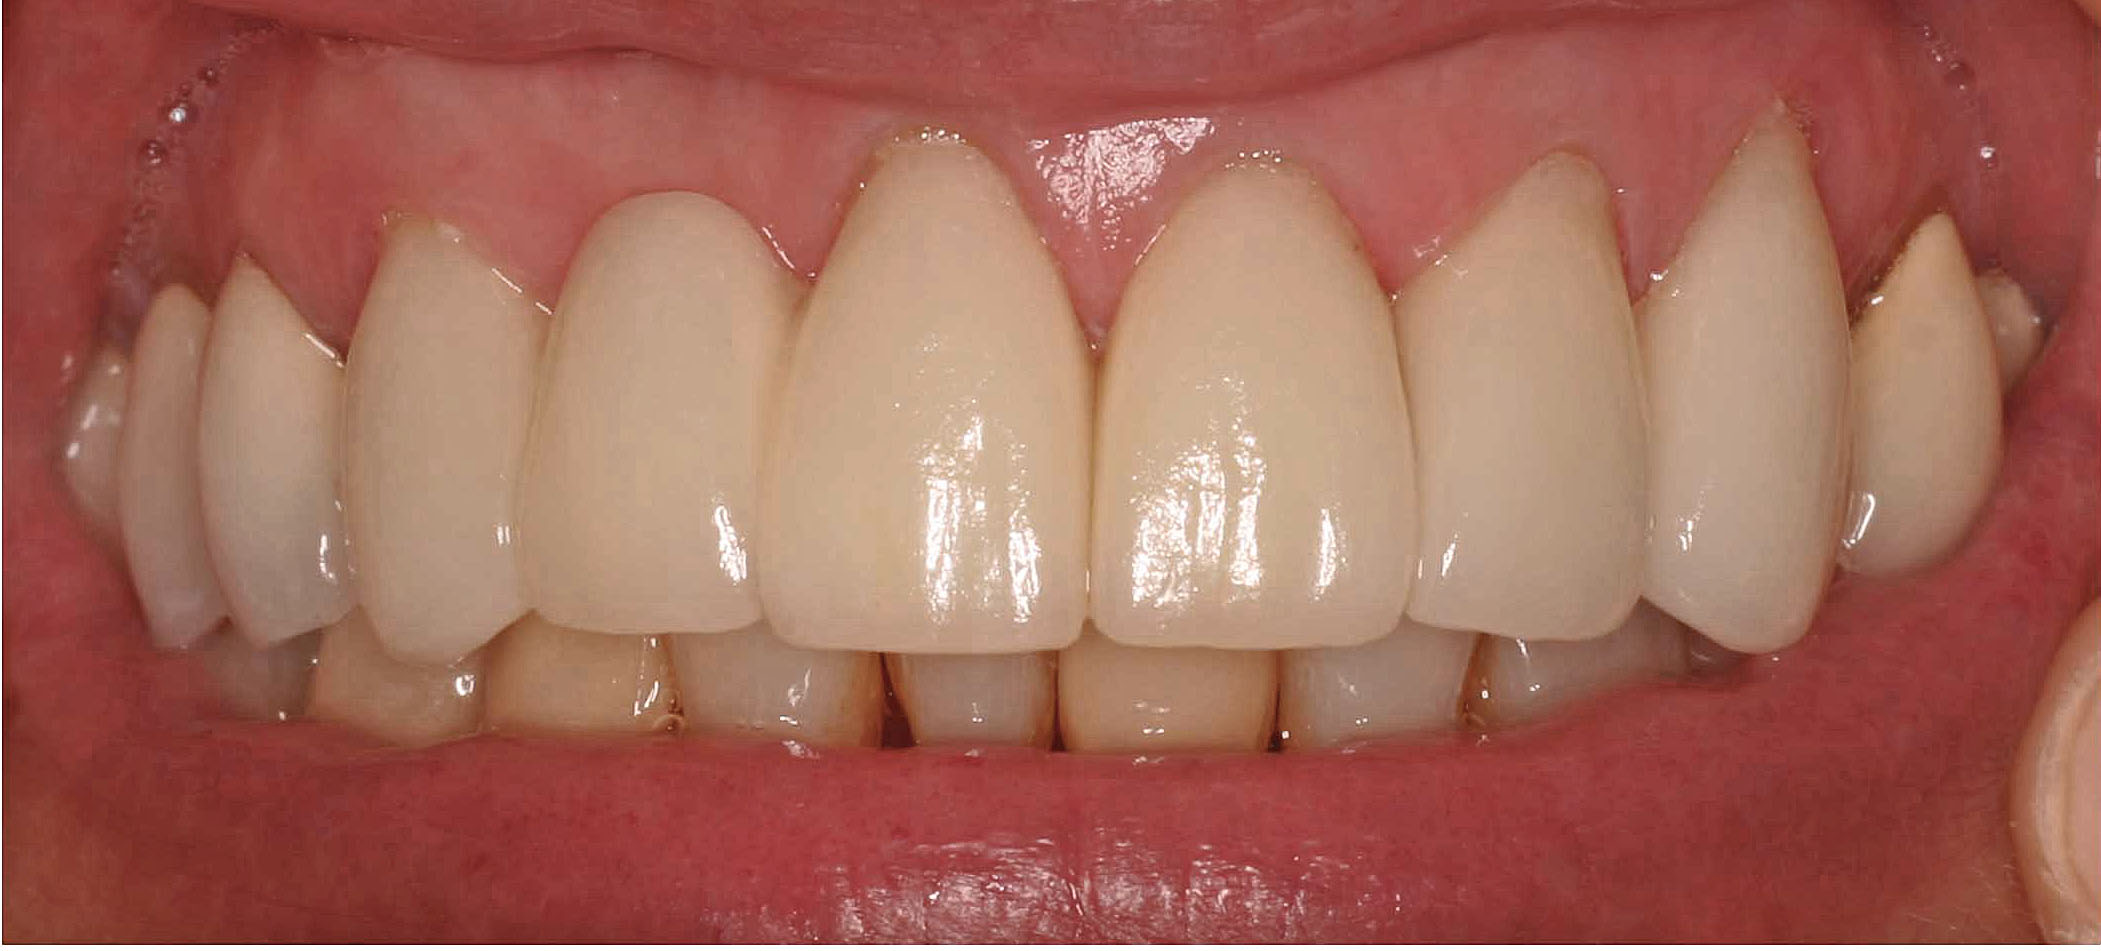 Close up of an actual patients mouth after a conservative smile makeover treatment